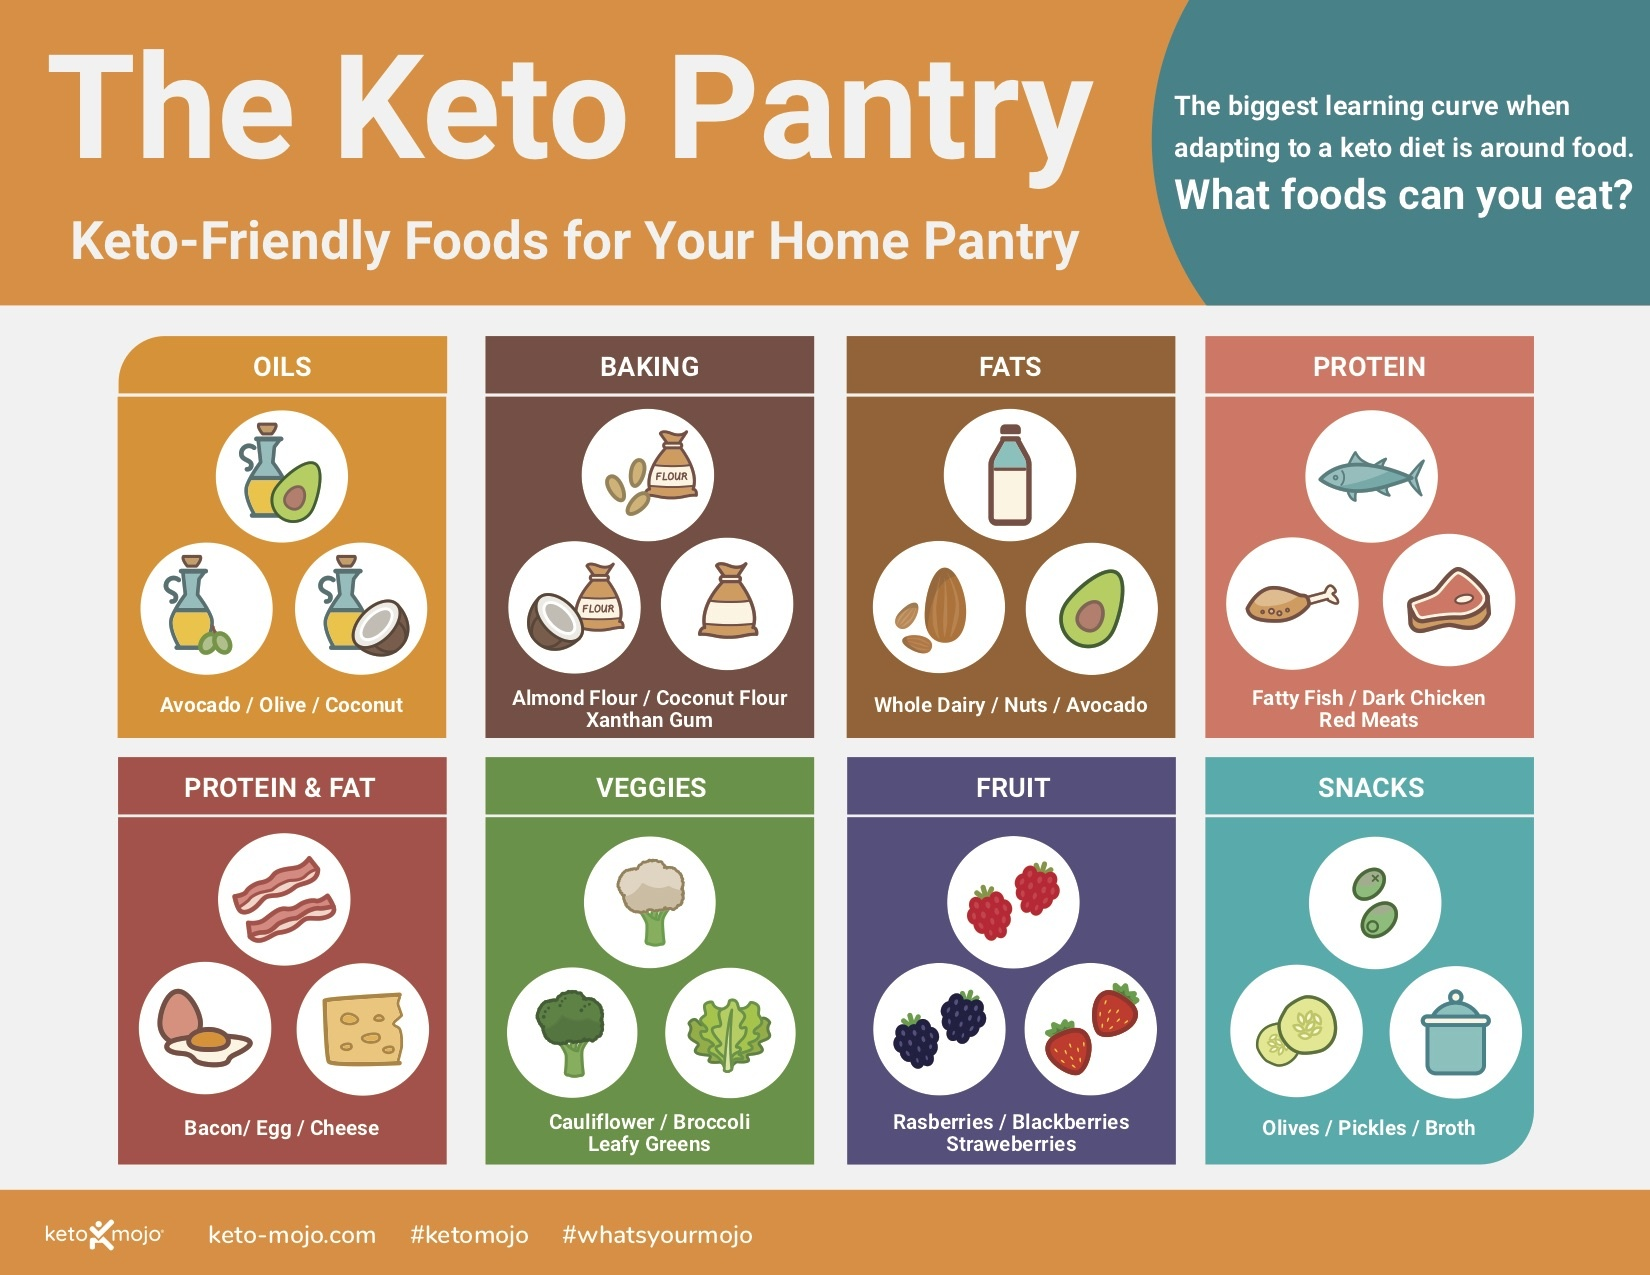 The Keto Pantry